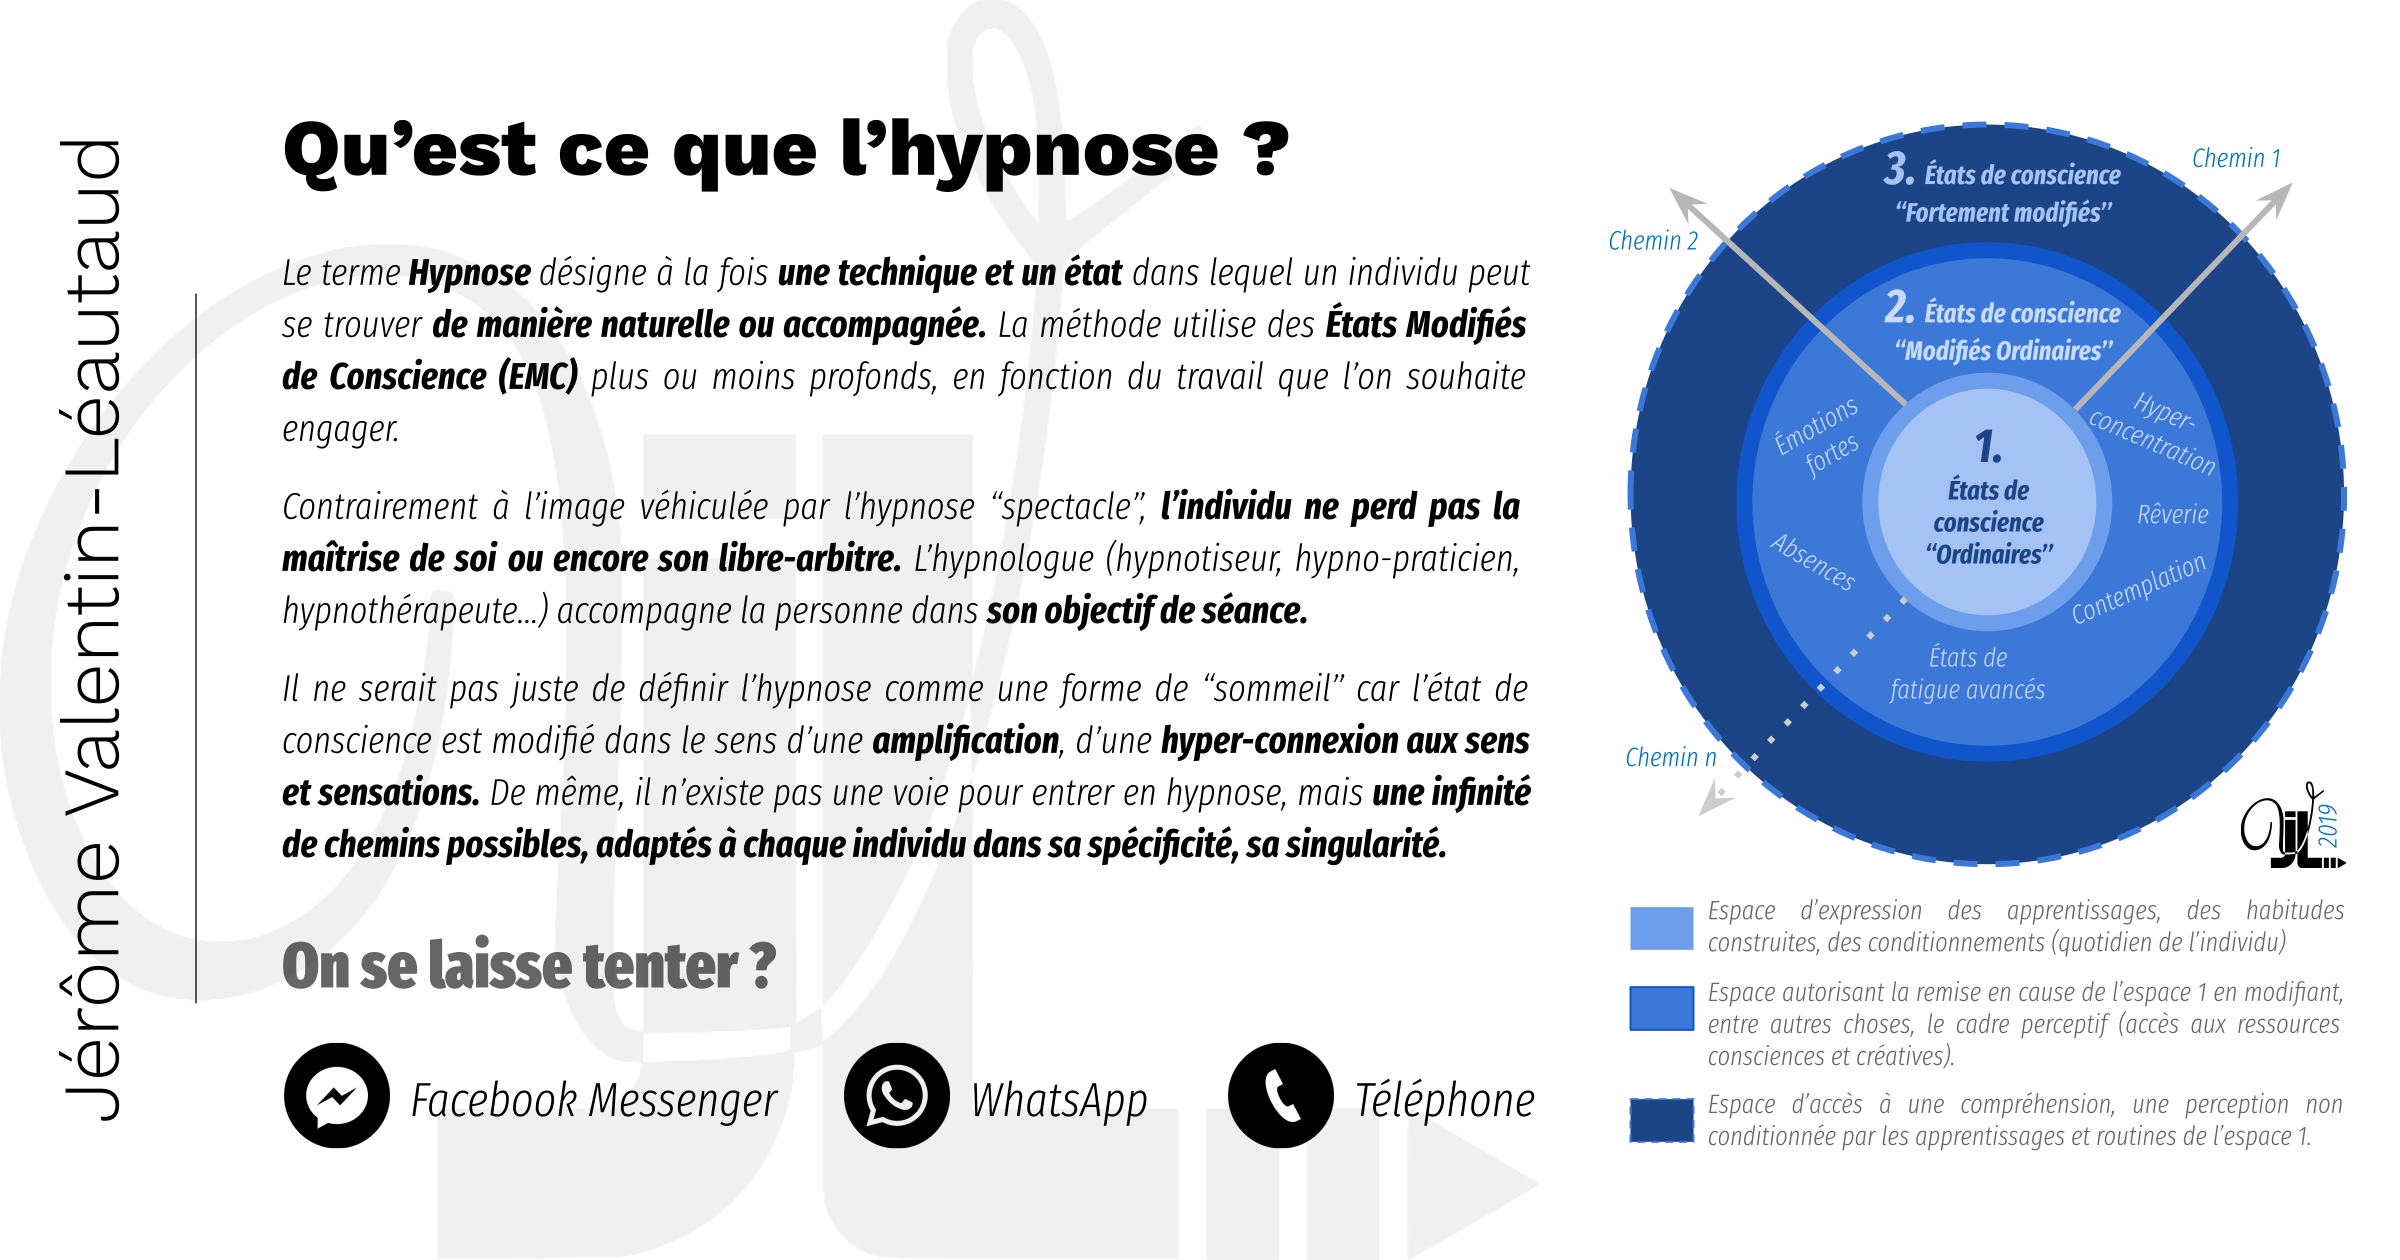 Description de l'hypnose